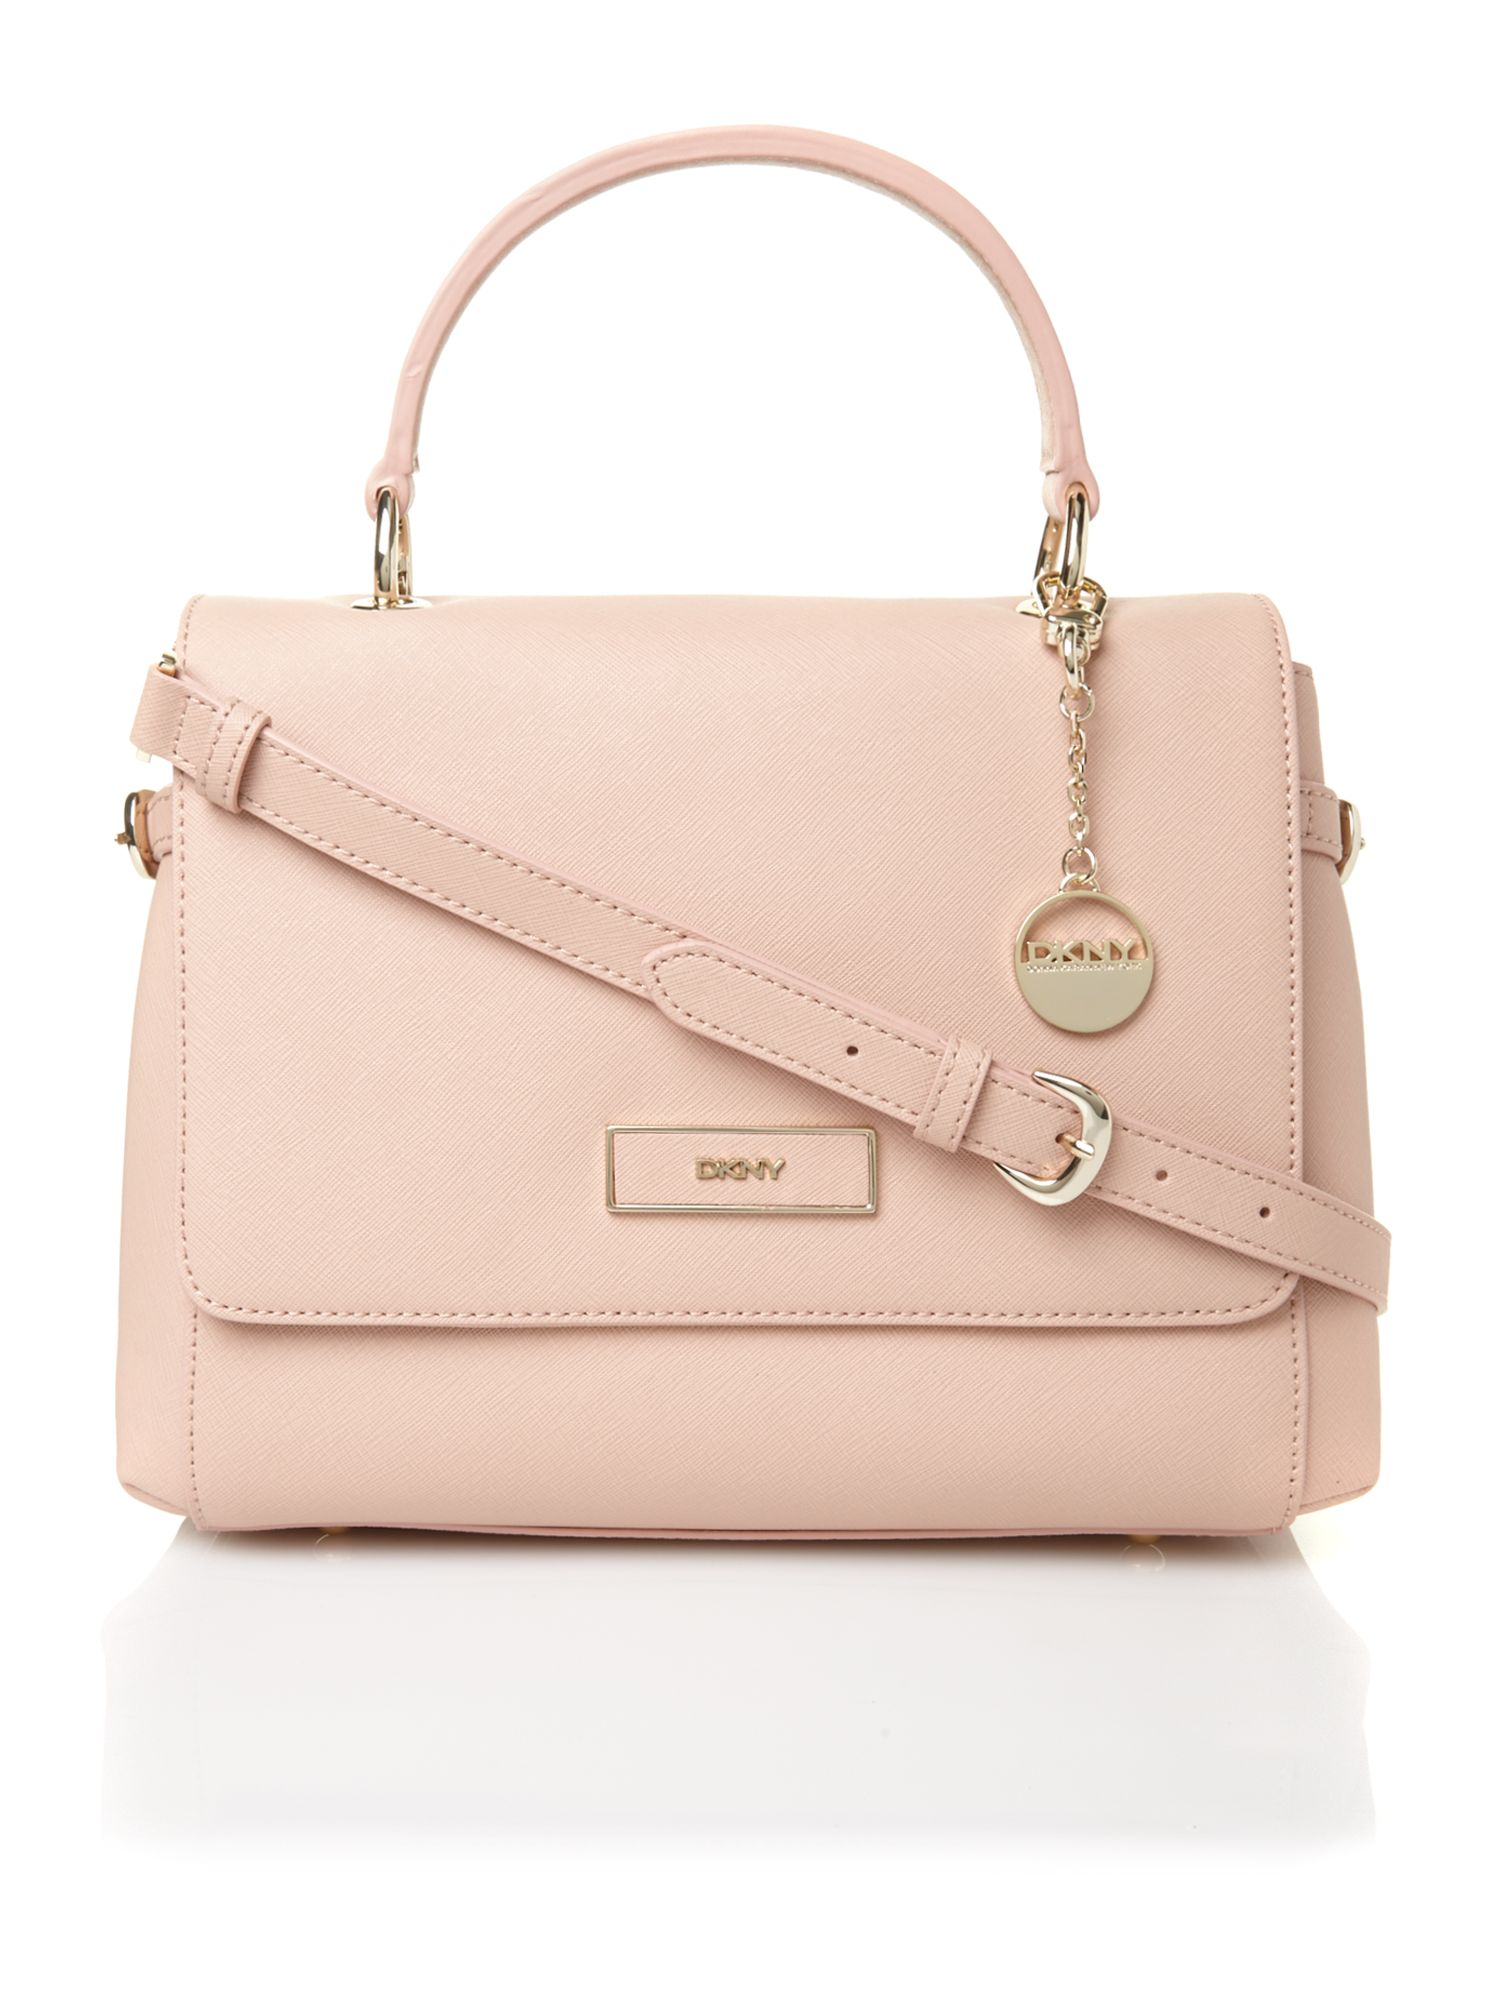 Dkny Saffiano-Leather Shoulder Bag in Pink | Lyst